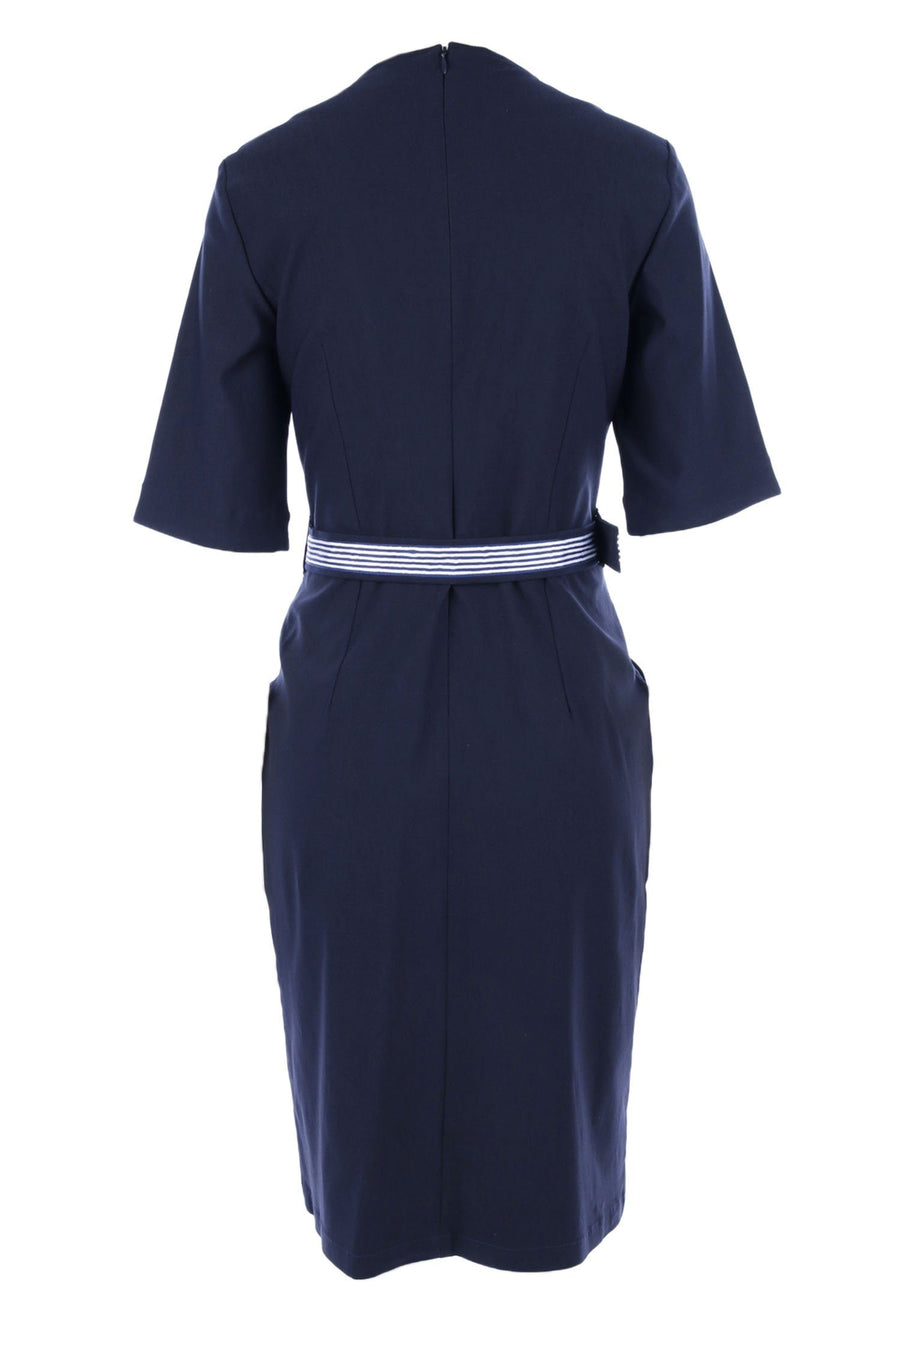 Fitted Dress Belted 3/4 Sleeve by Sacha Drake Frockaholics.com